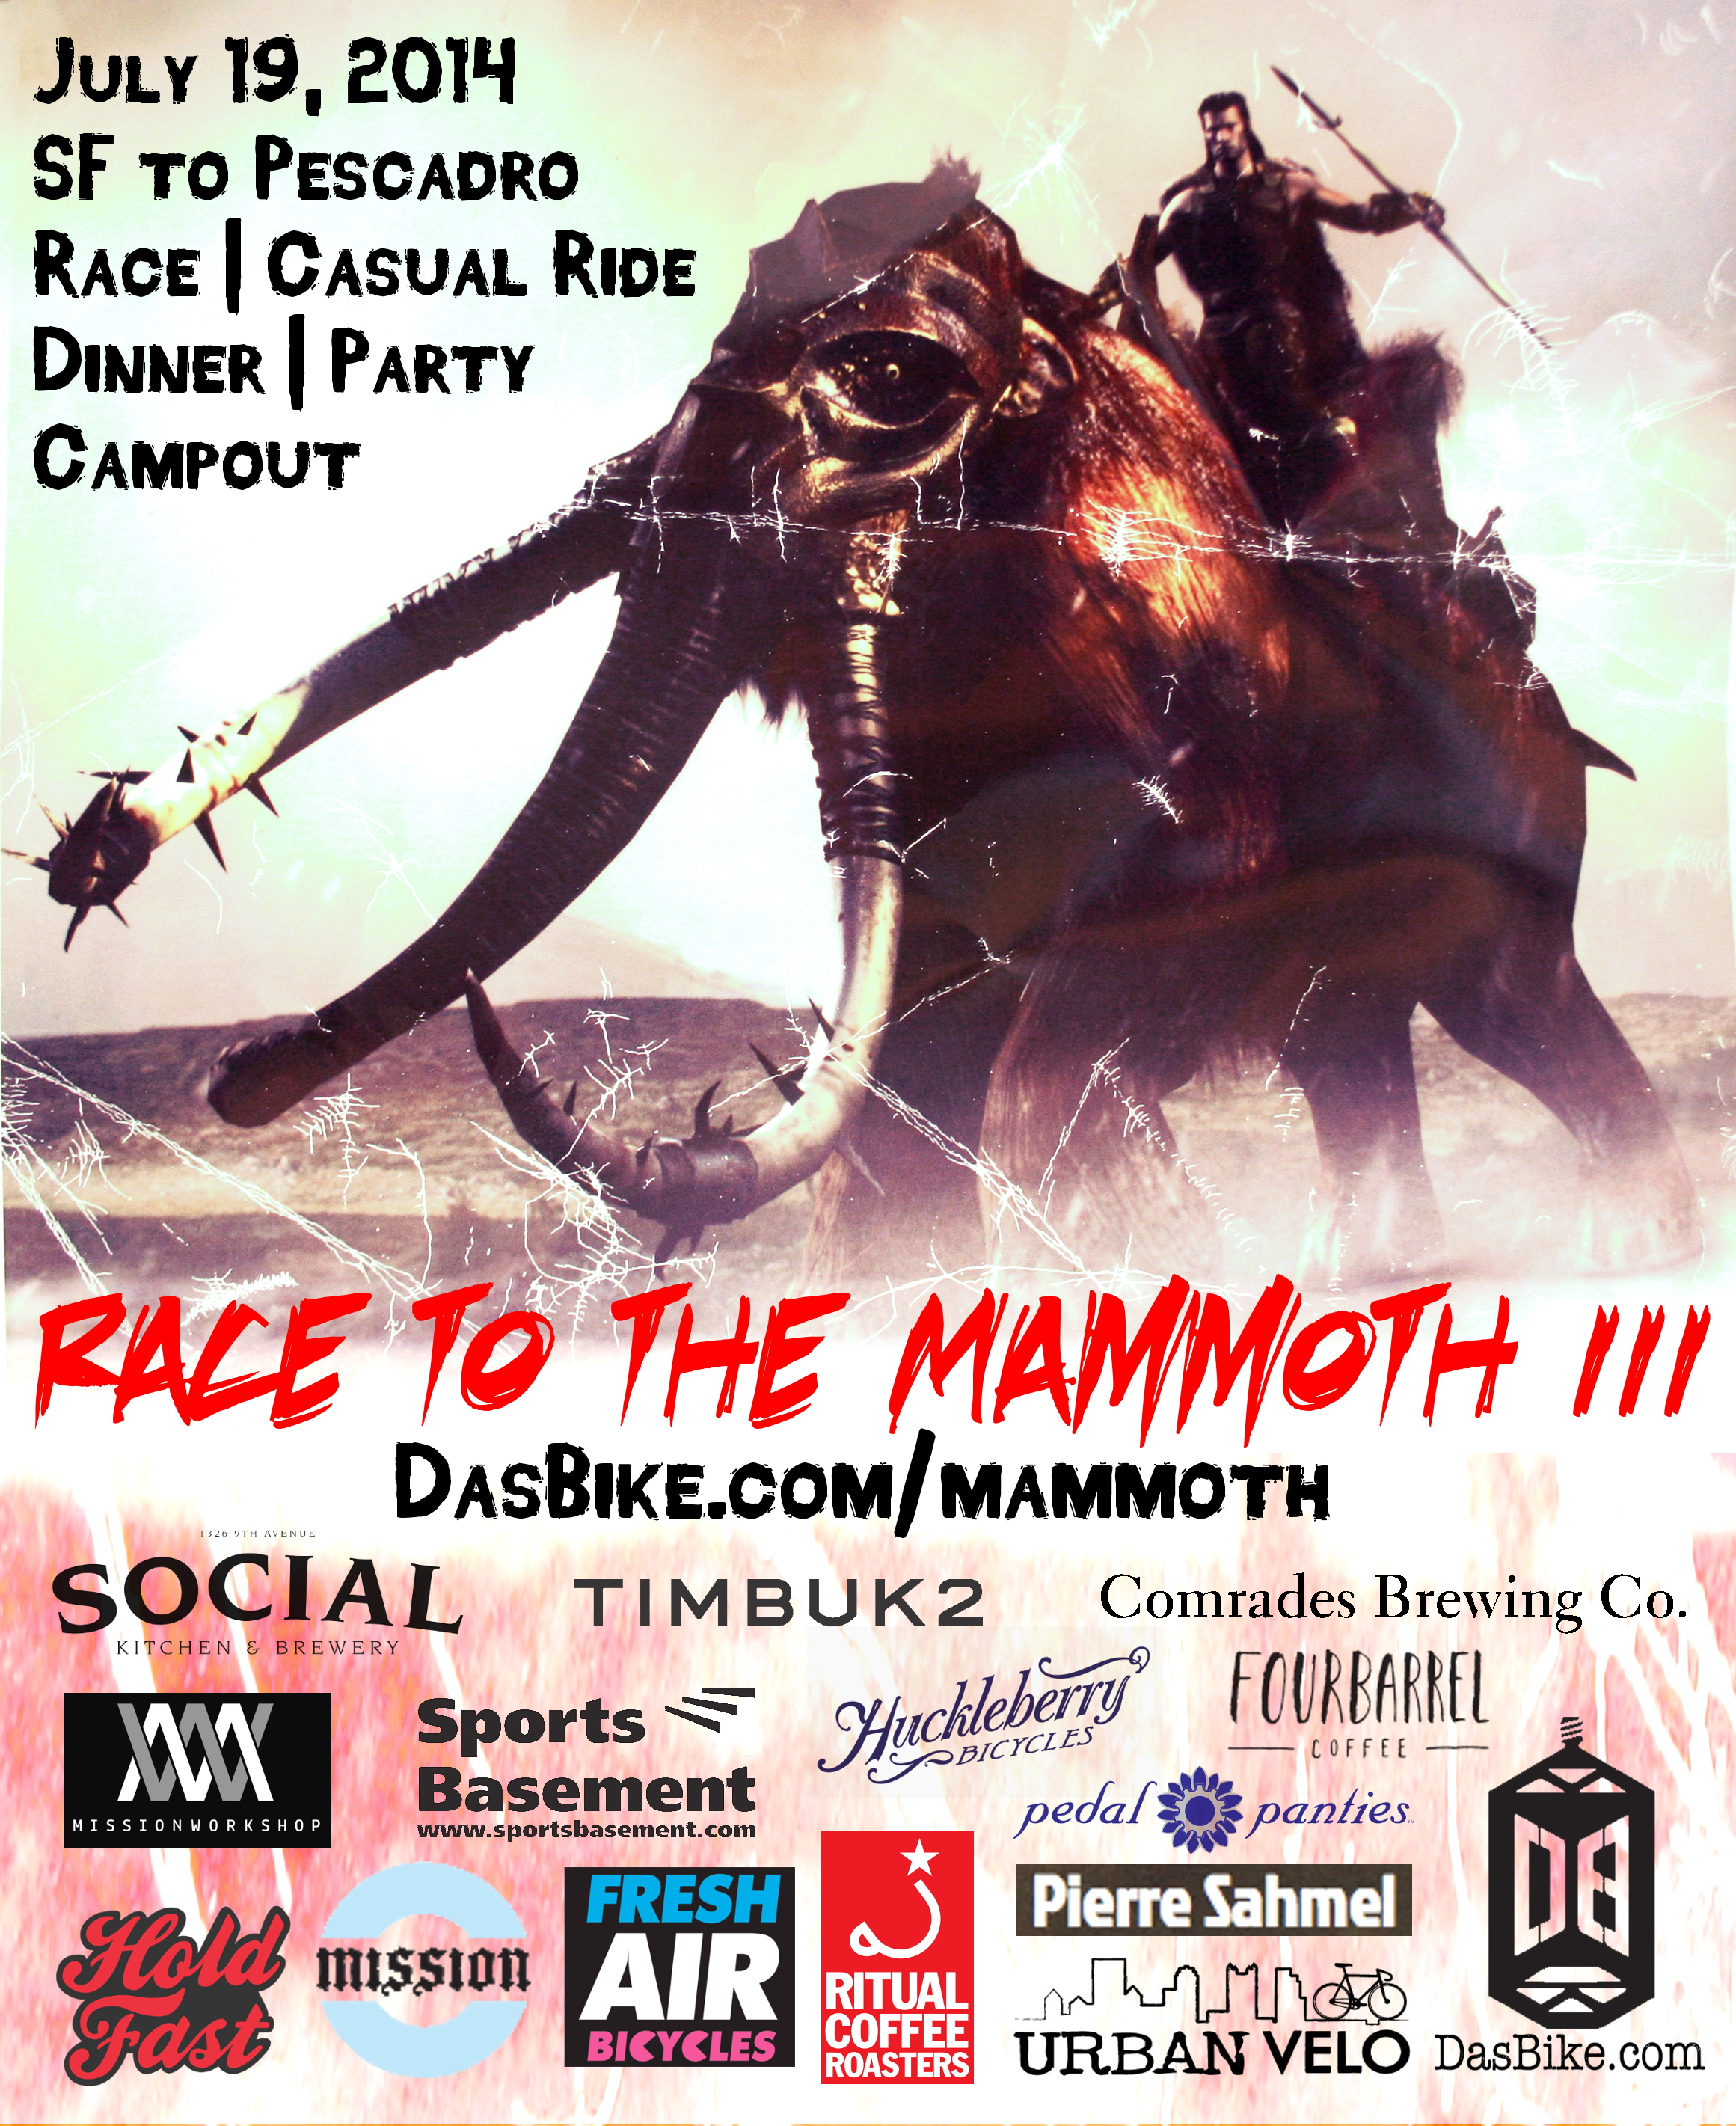 dasbike-race-to-the-mammoth-3